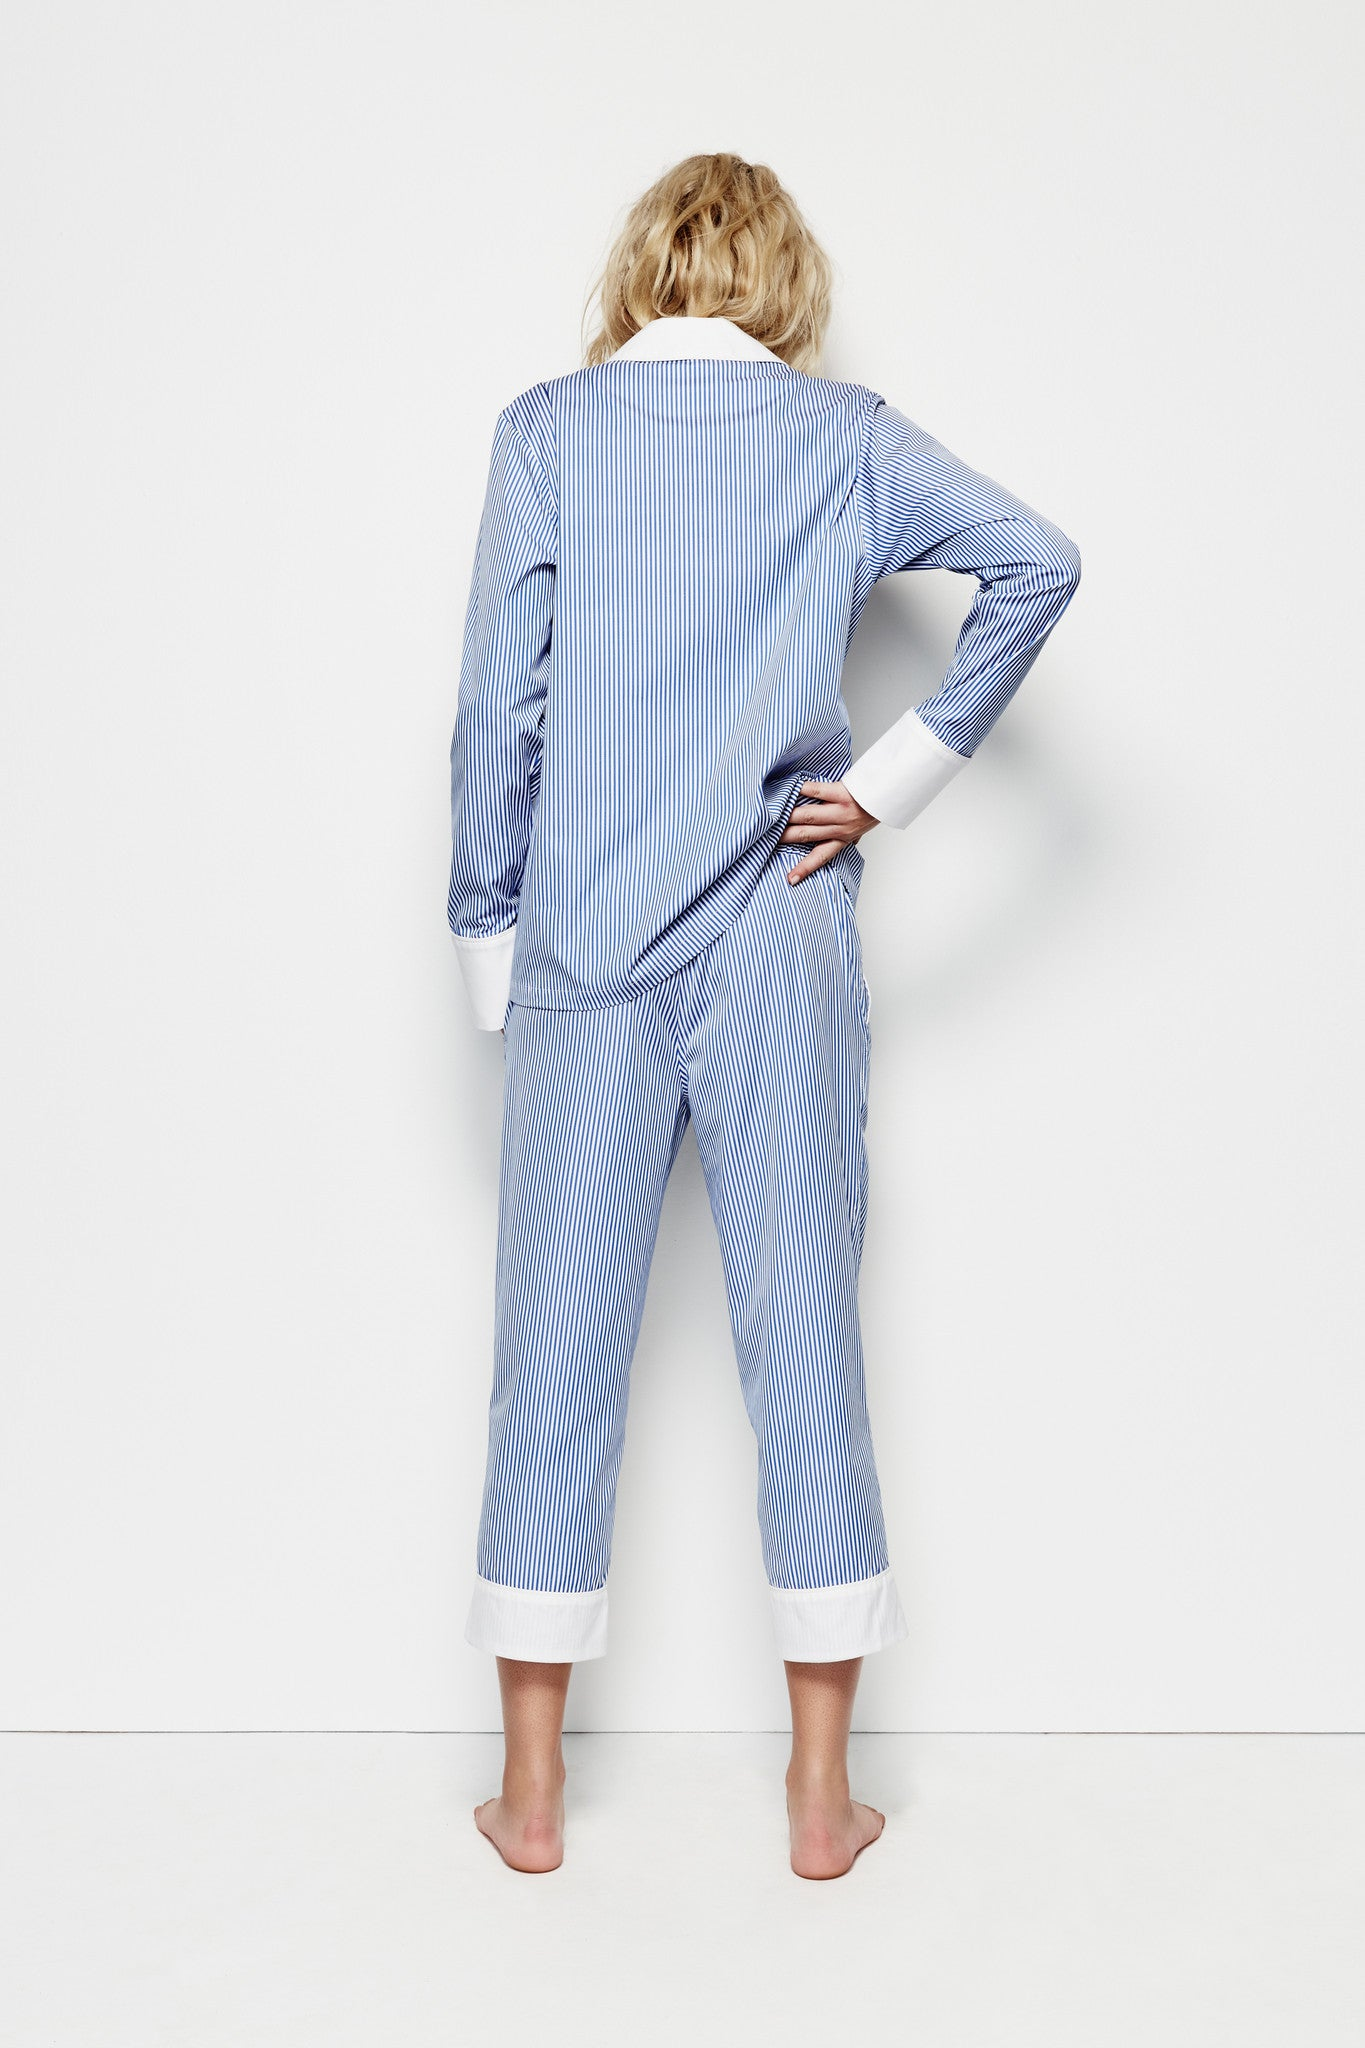 Jacqui 'Blue Stripe' Crop PJ Pant